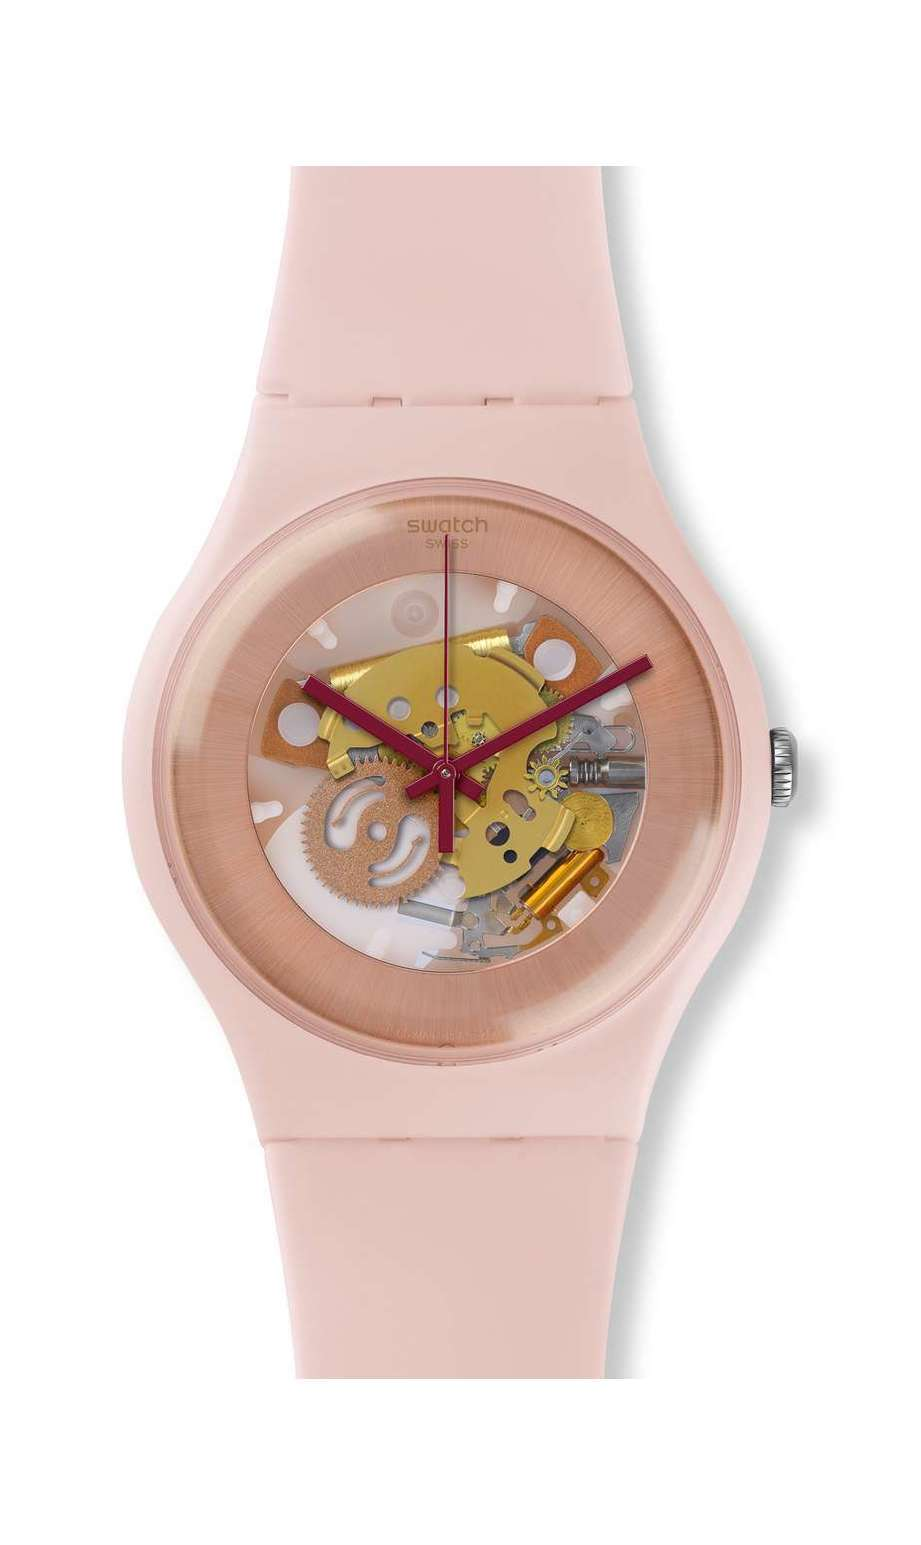 Swatch - SHADES OF ROSE - 1